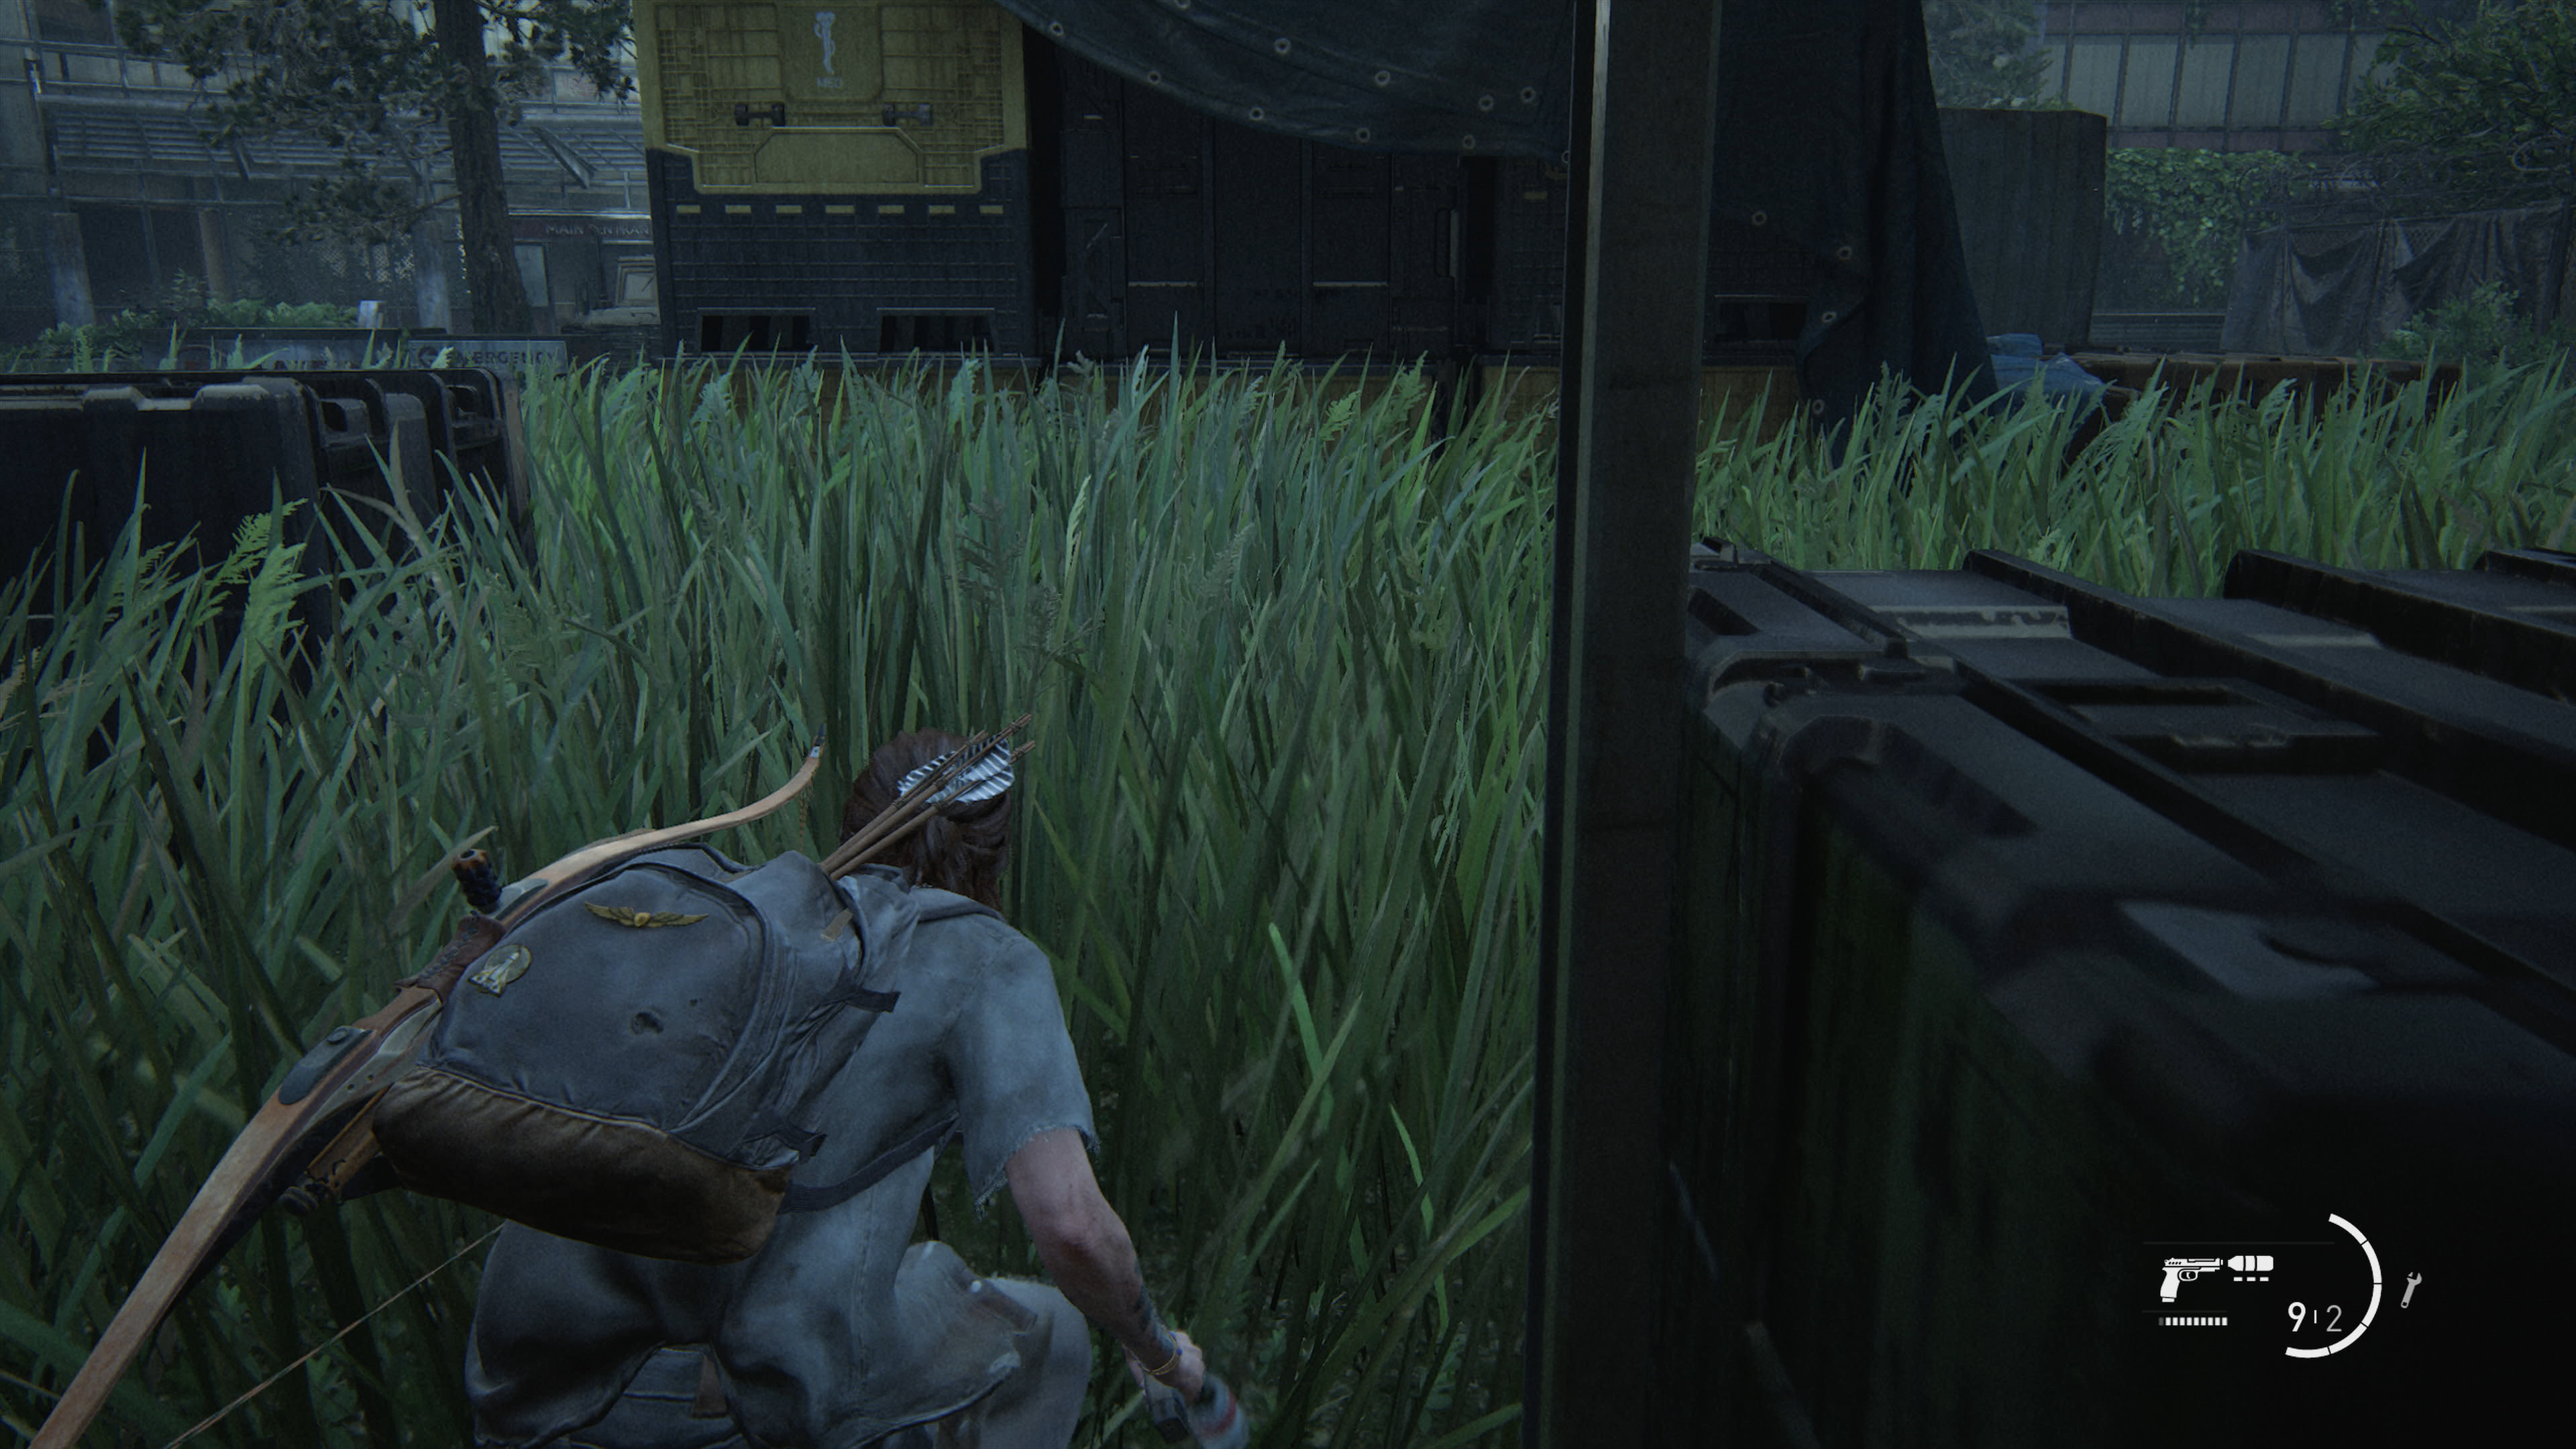 Ellie stealth in the grass from The Last of Us Part II